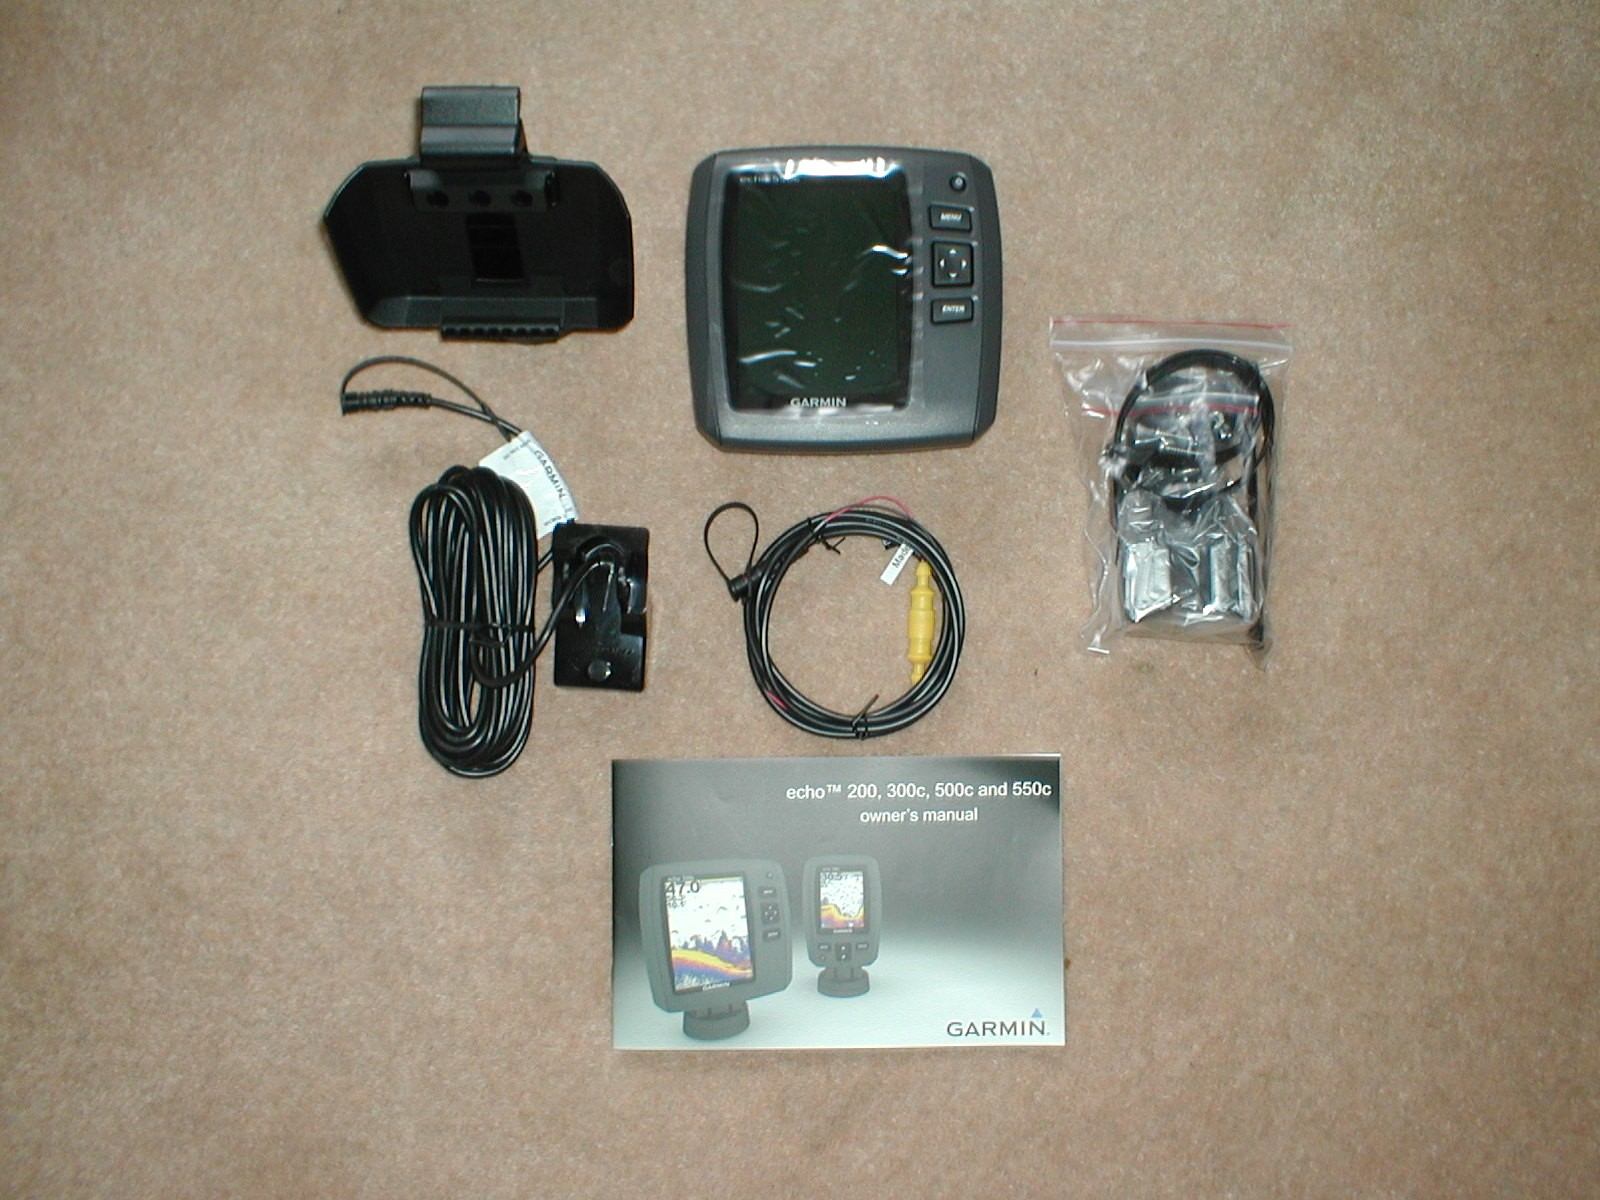 Gamin Striker 4 Plus Wiring A947b6 Garmin Fishfinder with Gps Wiring Diagram